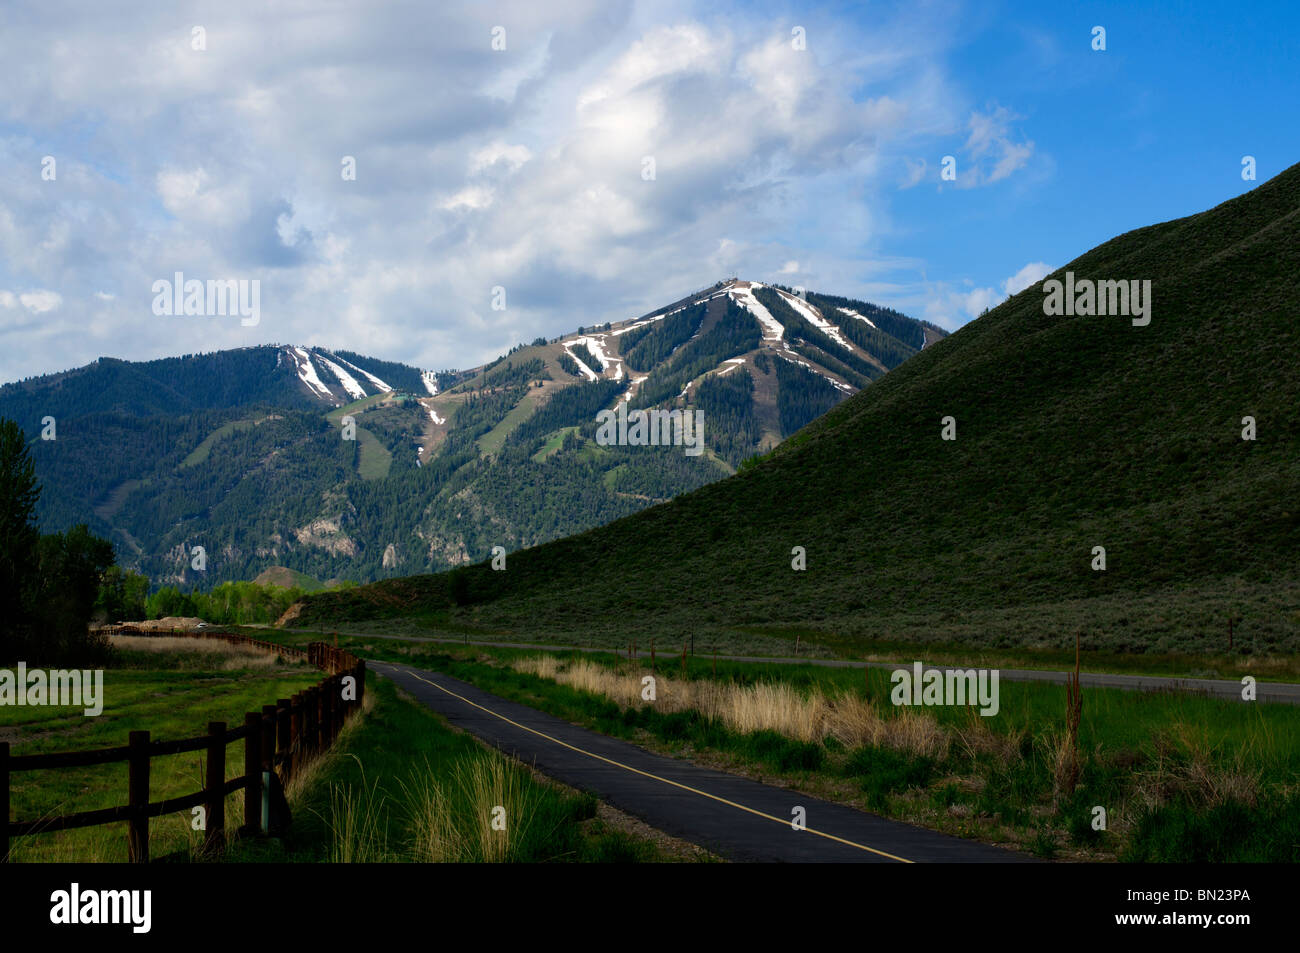 The Sun Valley ski slopes seen from the walking trail outside of town - Stock Image